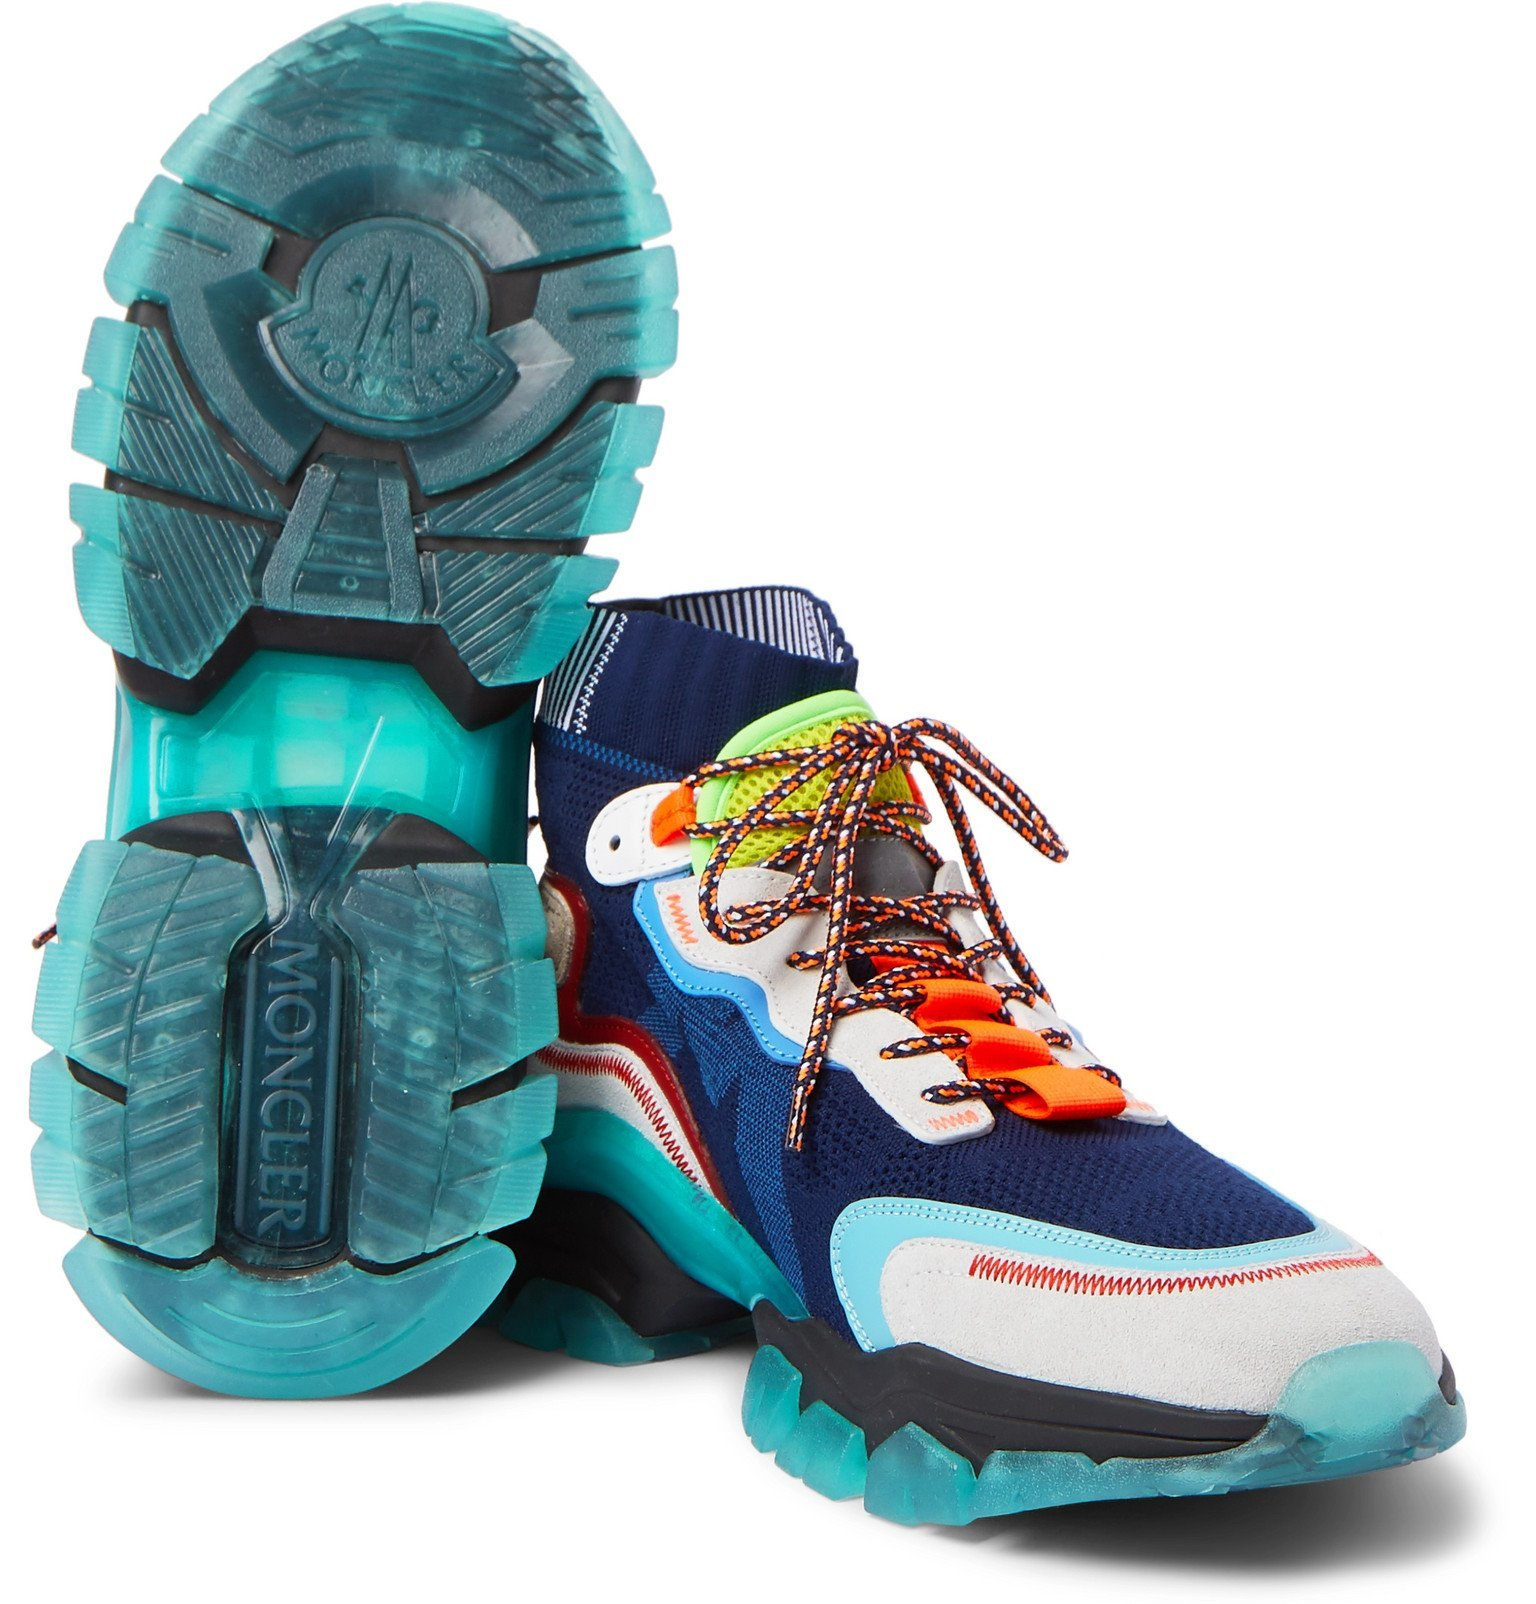 Moncler - Leave No Trace Leather, Suede and Mesh Sneakers - Blue